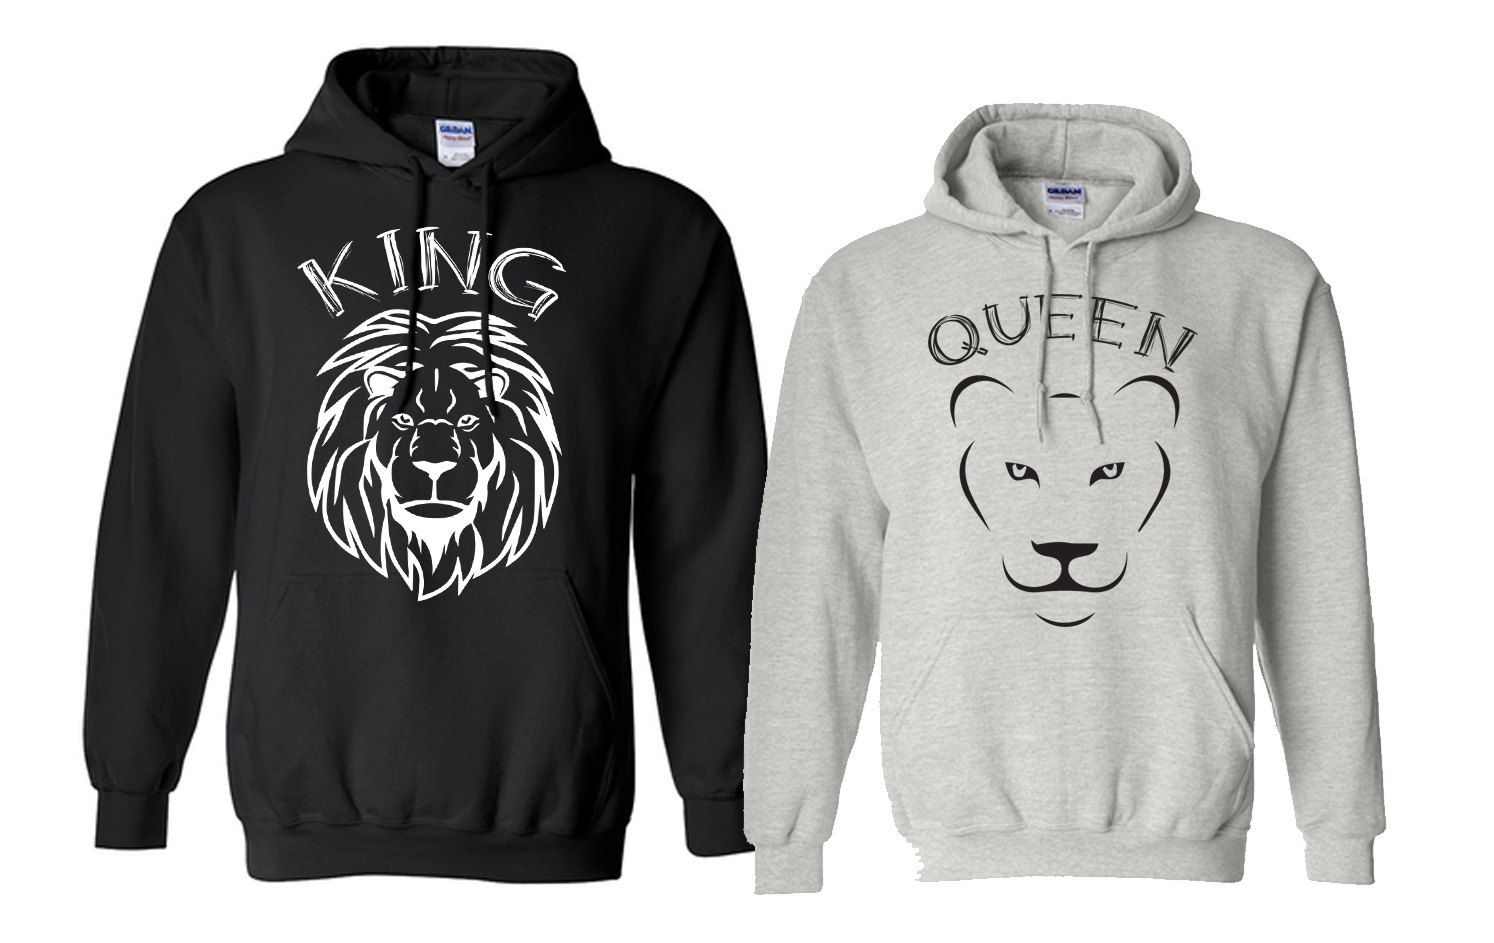 4e9b62ed16 Couples Hoodie, King shirt queen shirt, king and queen, lion king, custom  hoodies, printed hoodie couple funny hoodie husband wifey hoodies by  MOTIFIT on ...